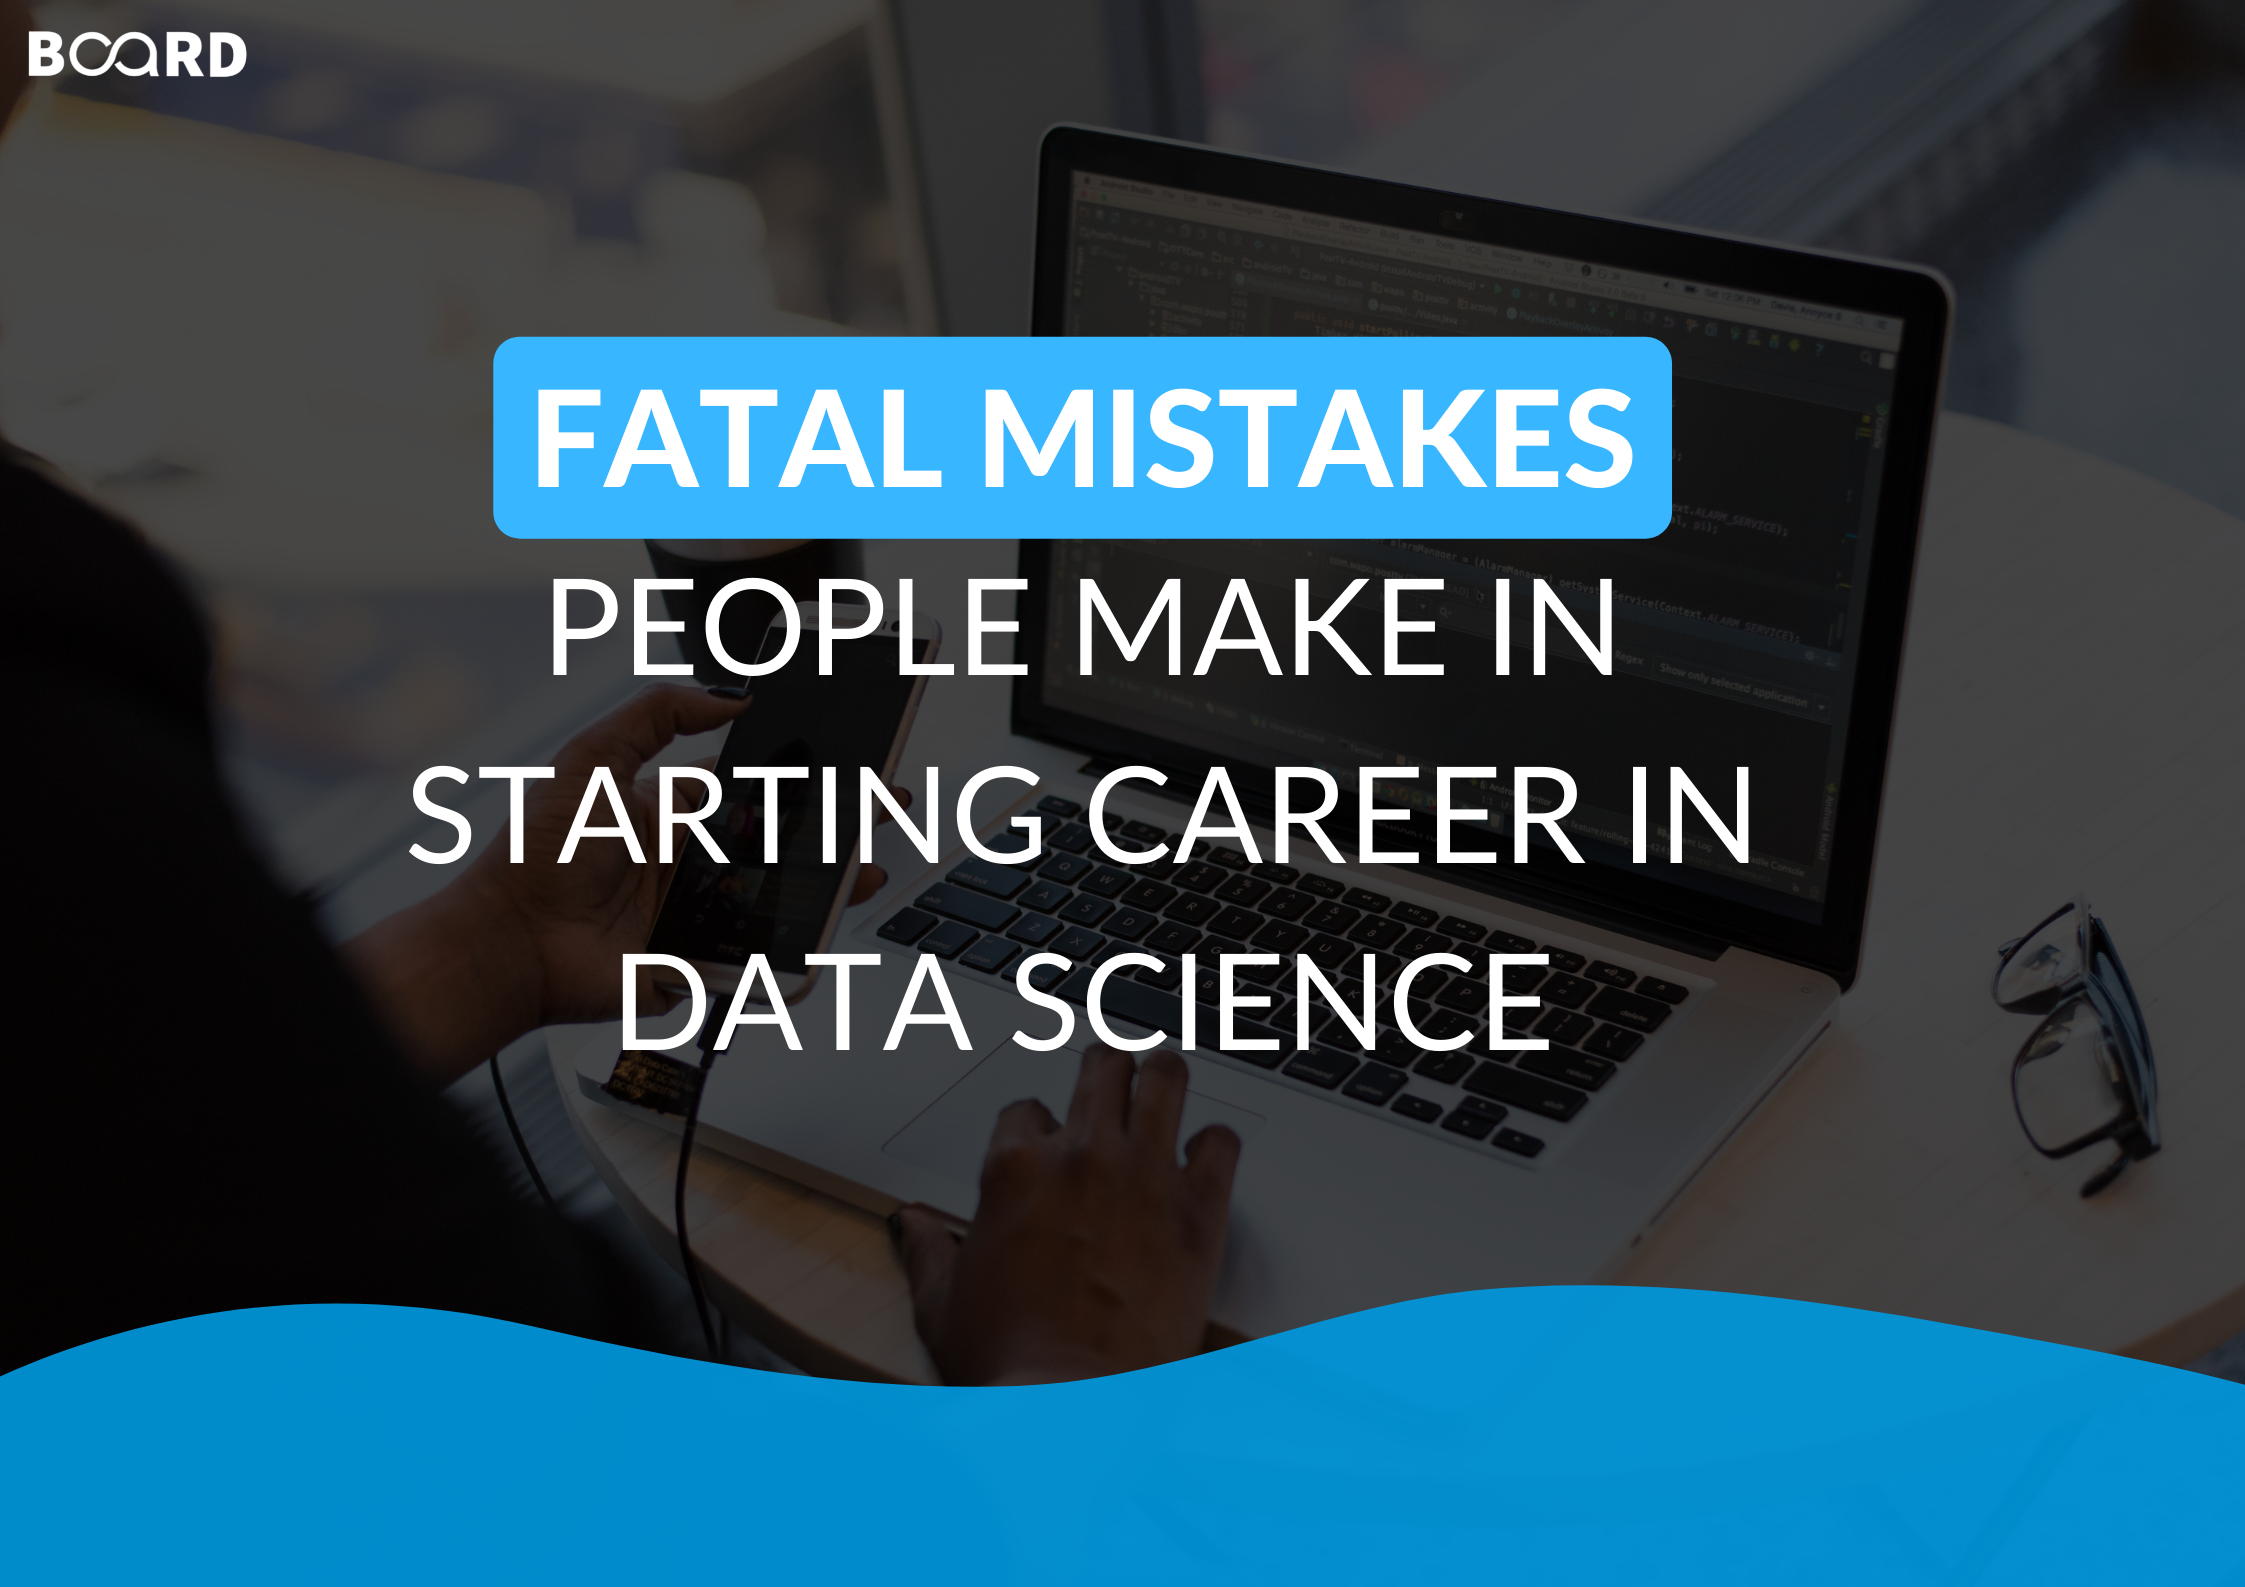 Fatal Mistakes People Make In Starting Career In Data Science: